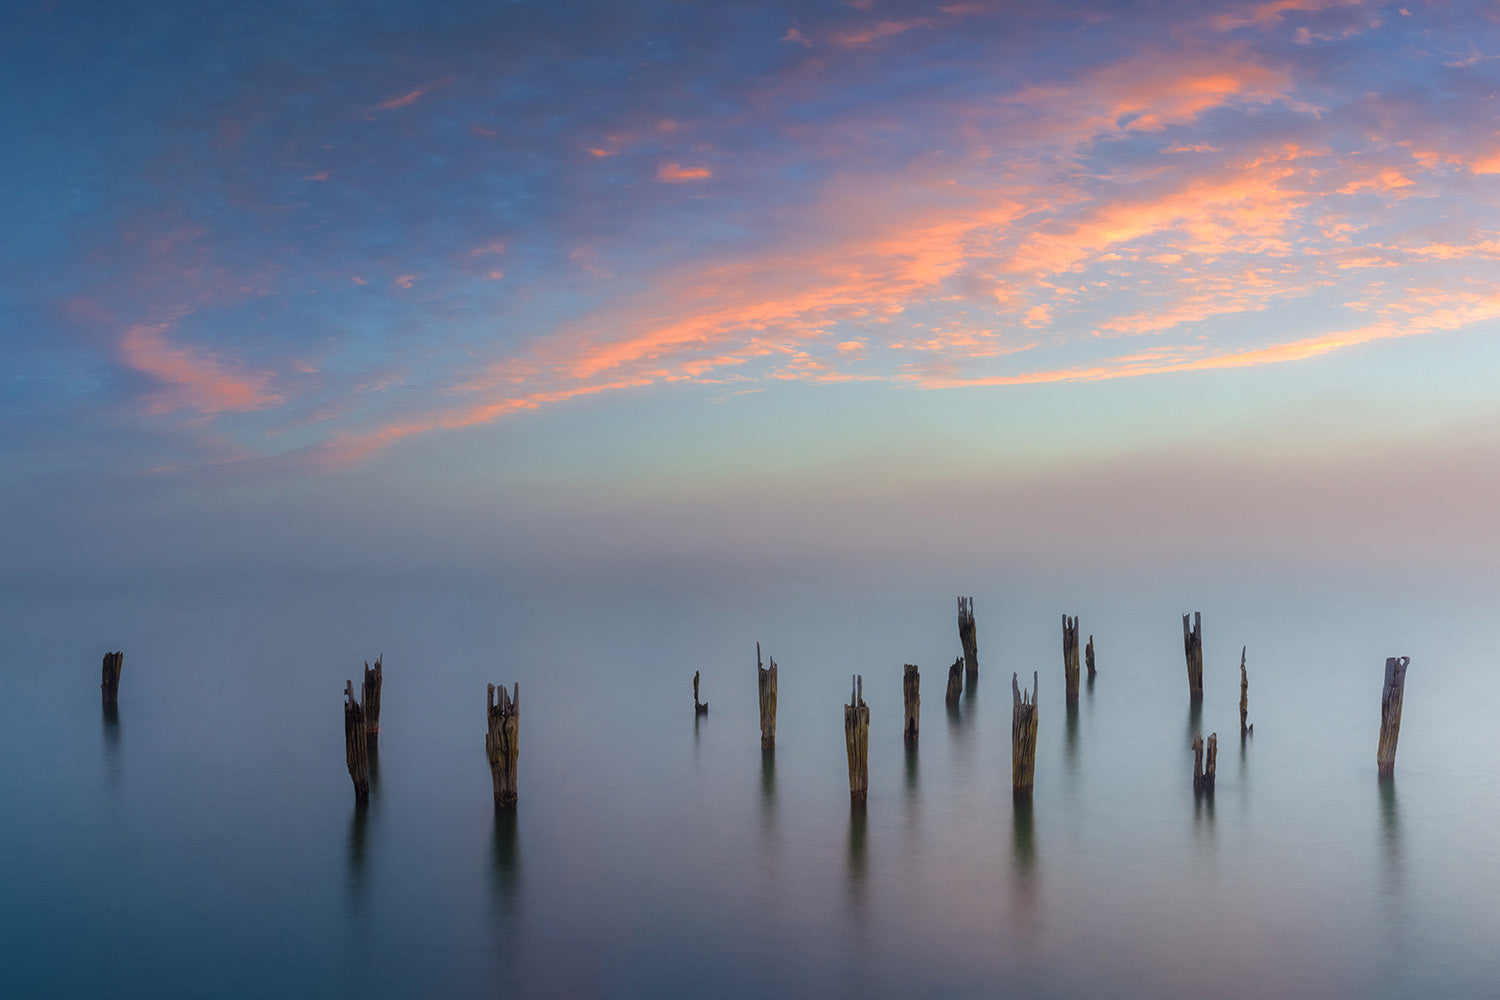 Landscape wall art photography of a foggy sunset over abandoned pilings in the Boston Harbor